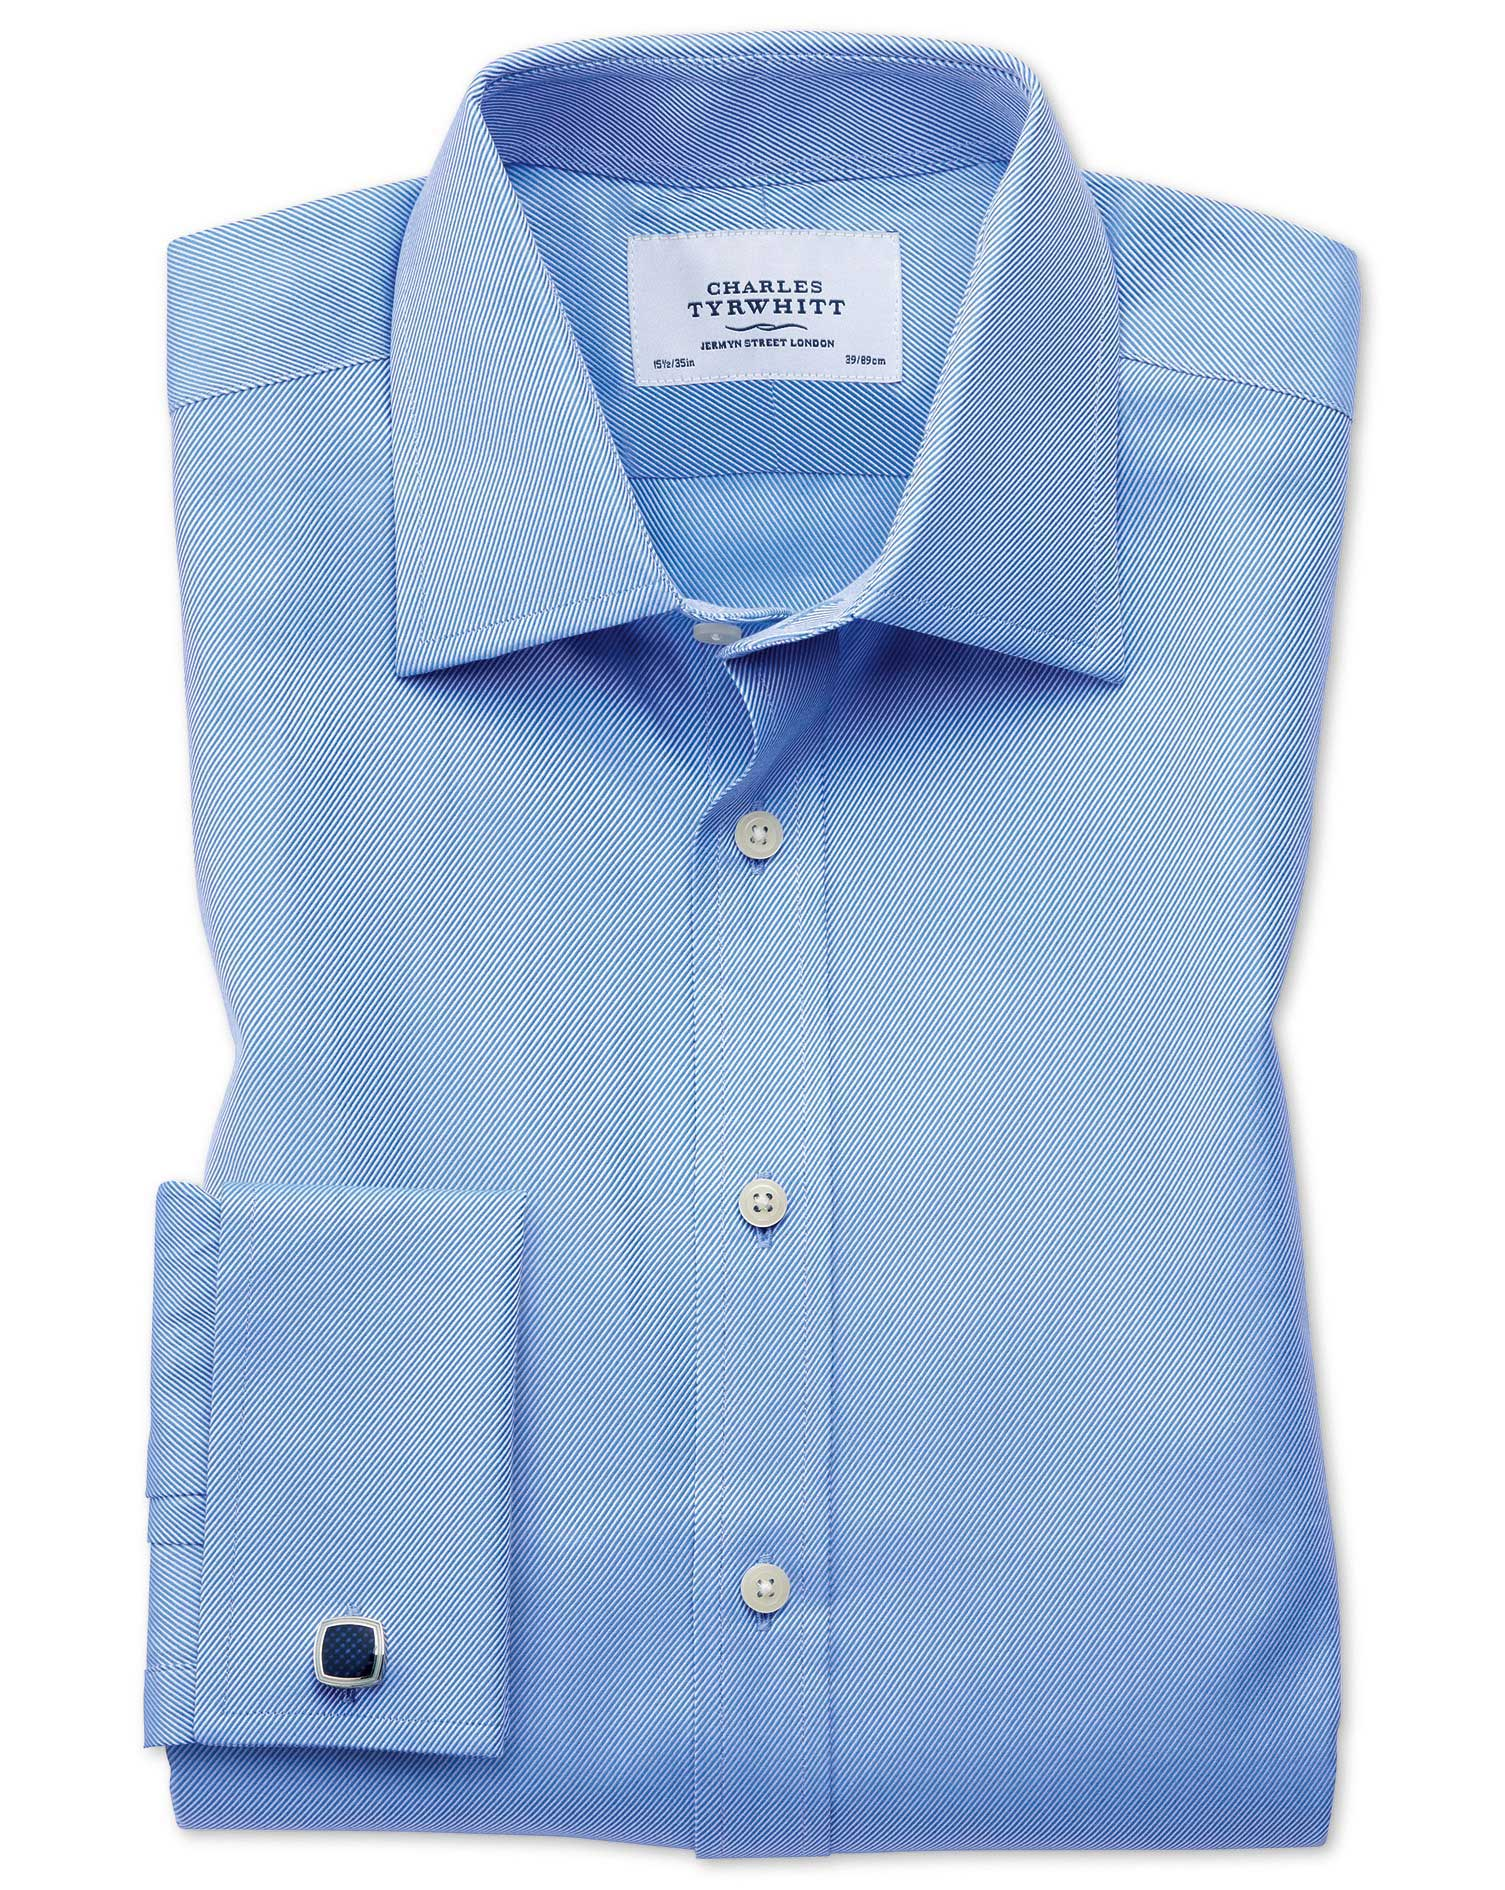 Extra Slim Fit Egyptian Cotton Cavalry Twill Blue Formal Shirt Single Cuff Size 16/36 by Charles Tyr